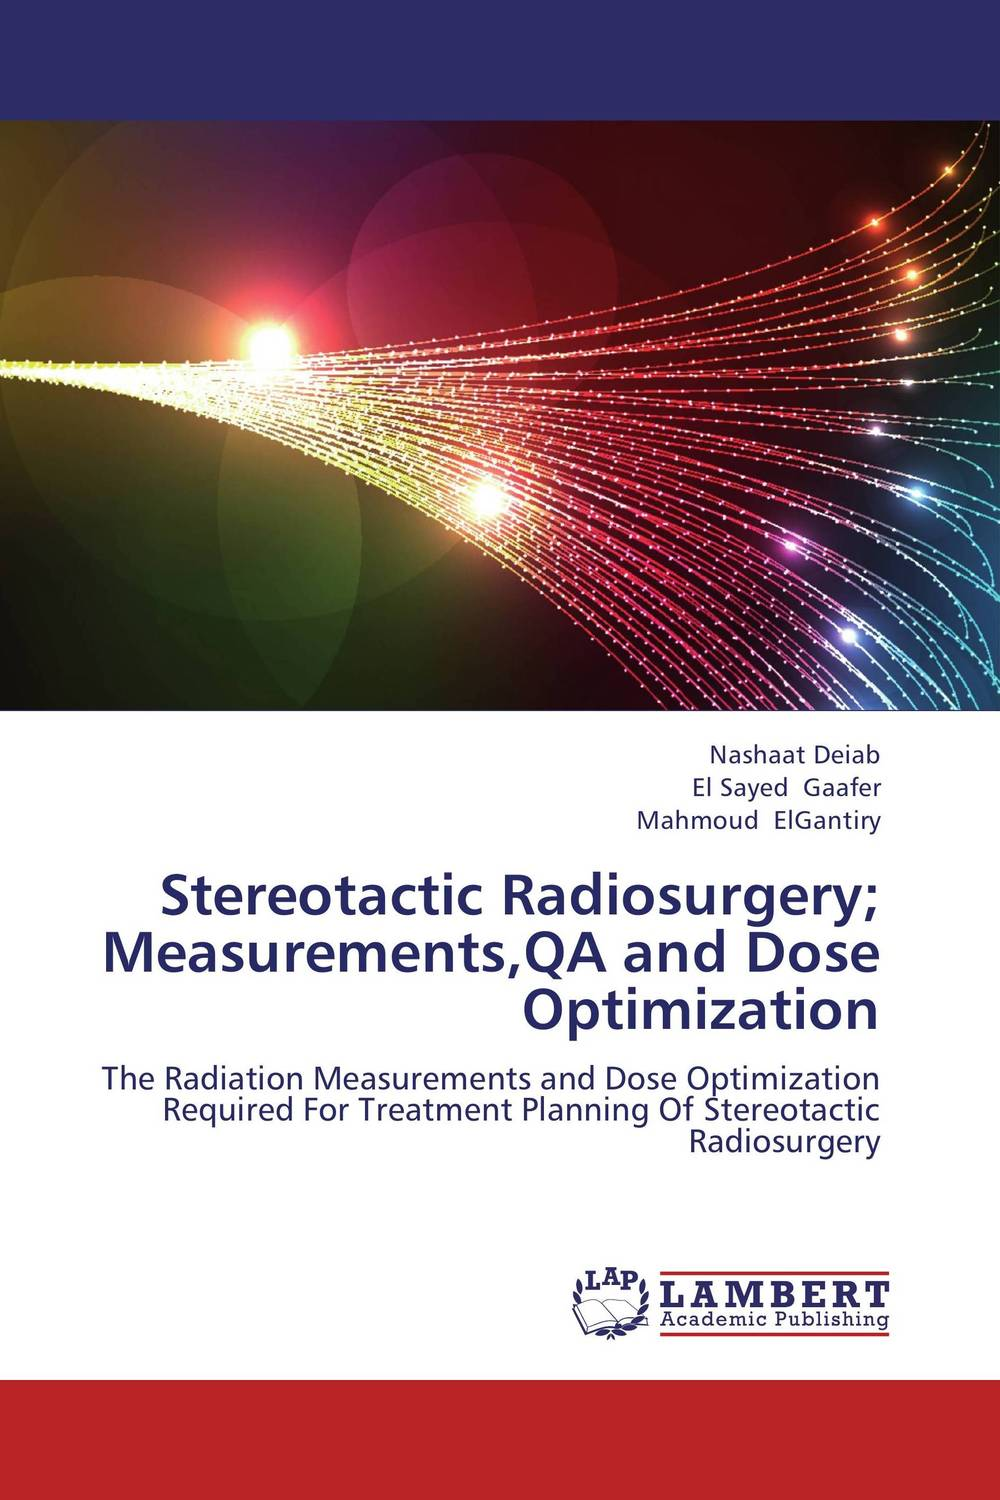 Stereotactic Radiosurgery; Measurements,QA and Dose Optimization